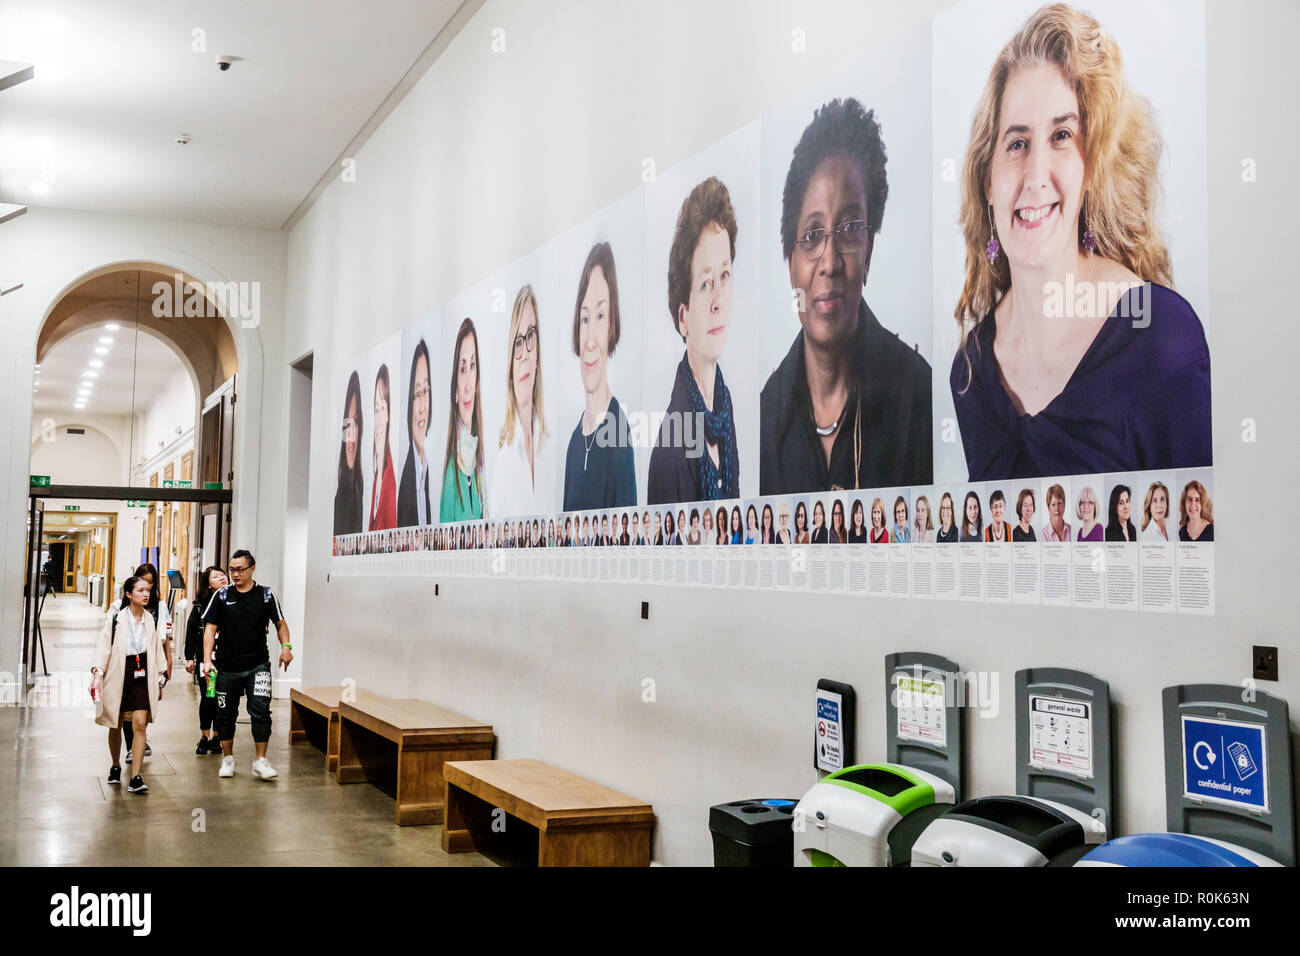 London England United Kingdom Great Britain Covent Garden Strand King's College King's Building campus public research university hallway posters wome - Stock Image